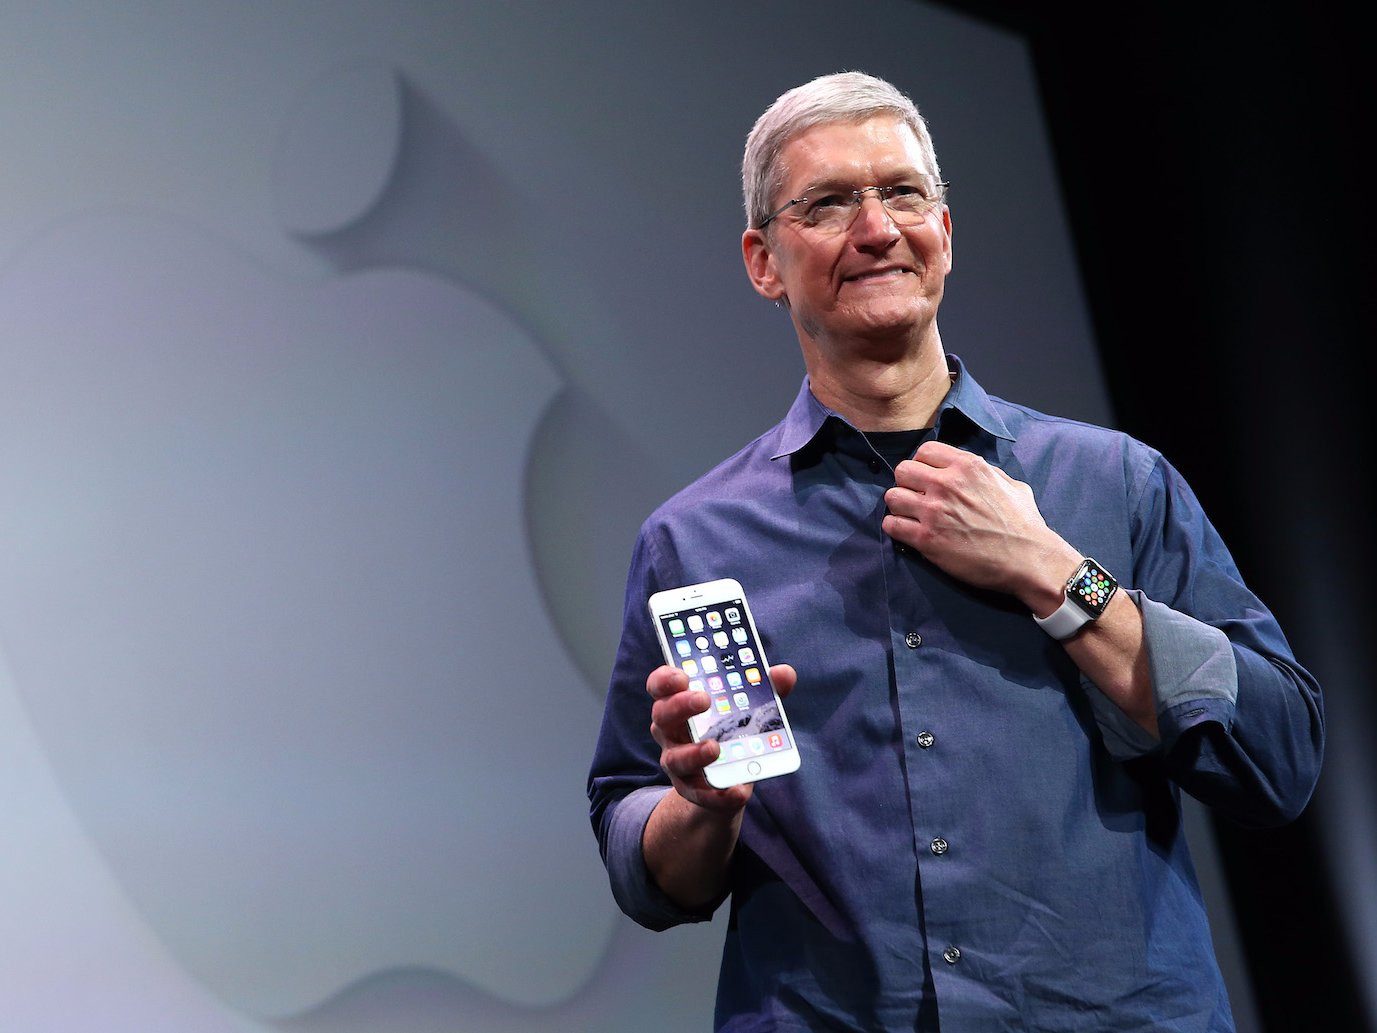 1493802978_tim-cook-with-iphone.jpg